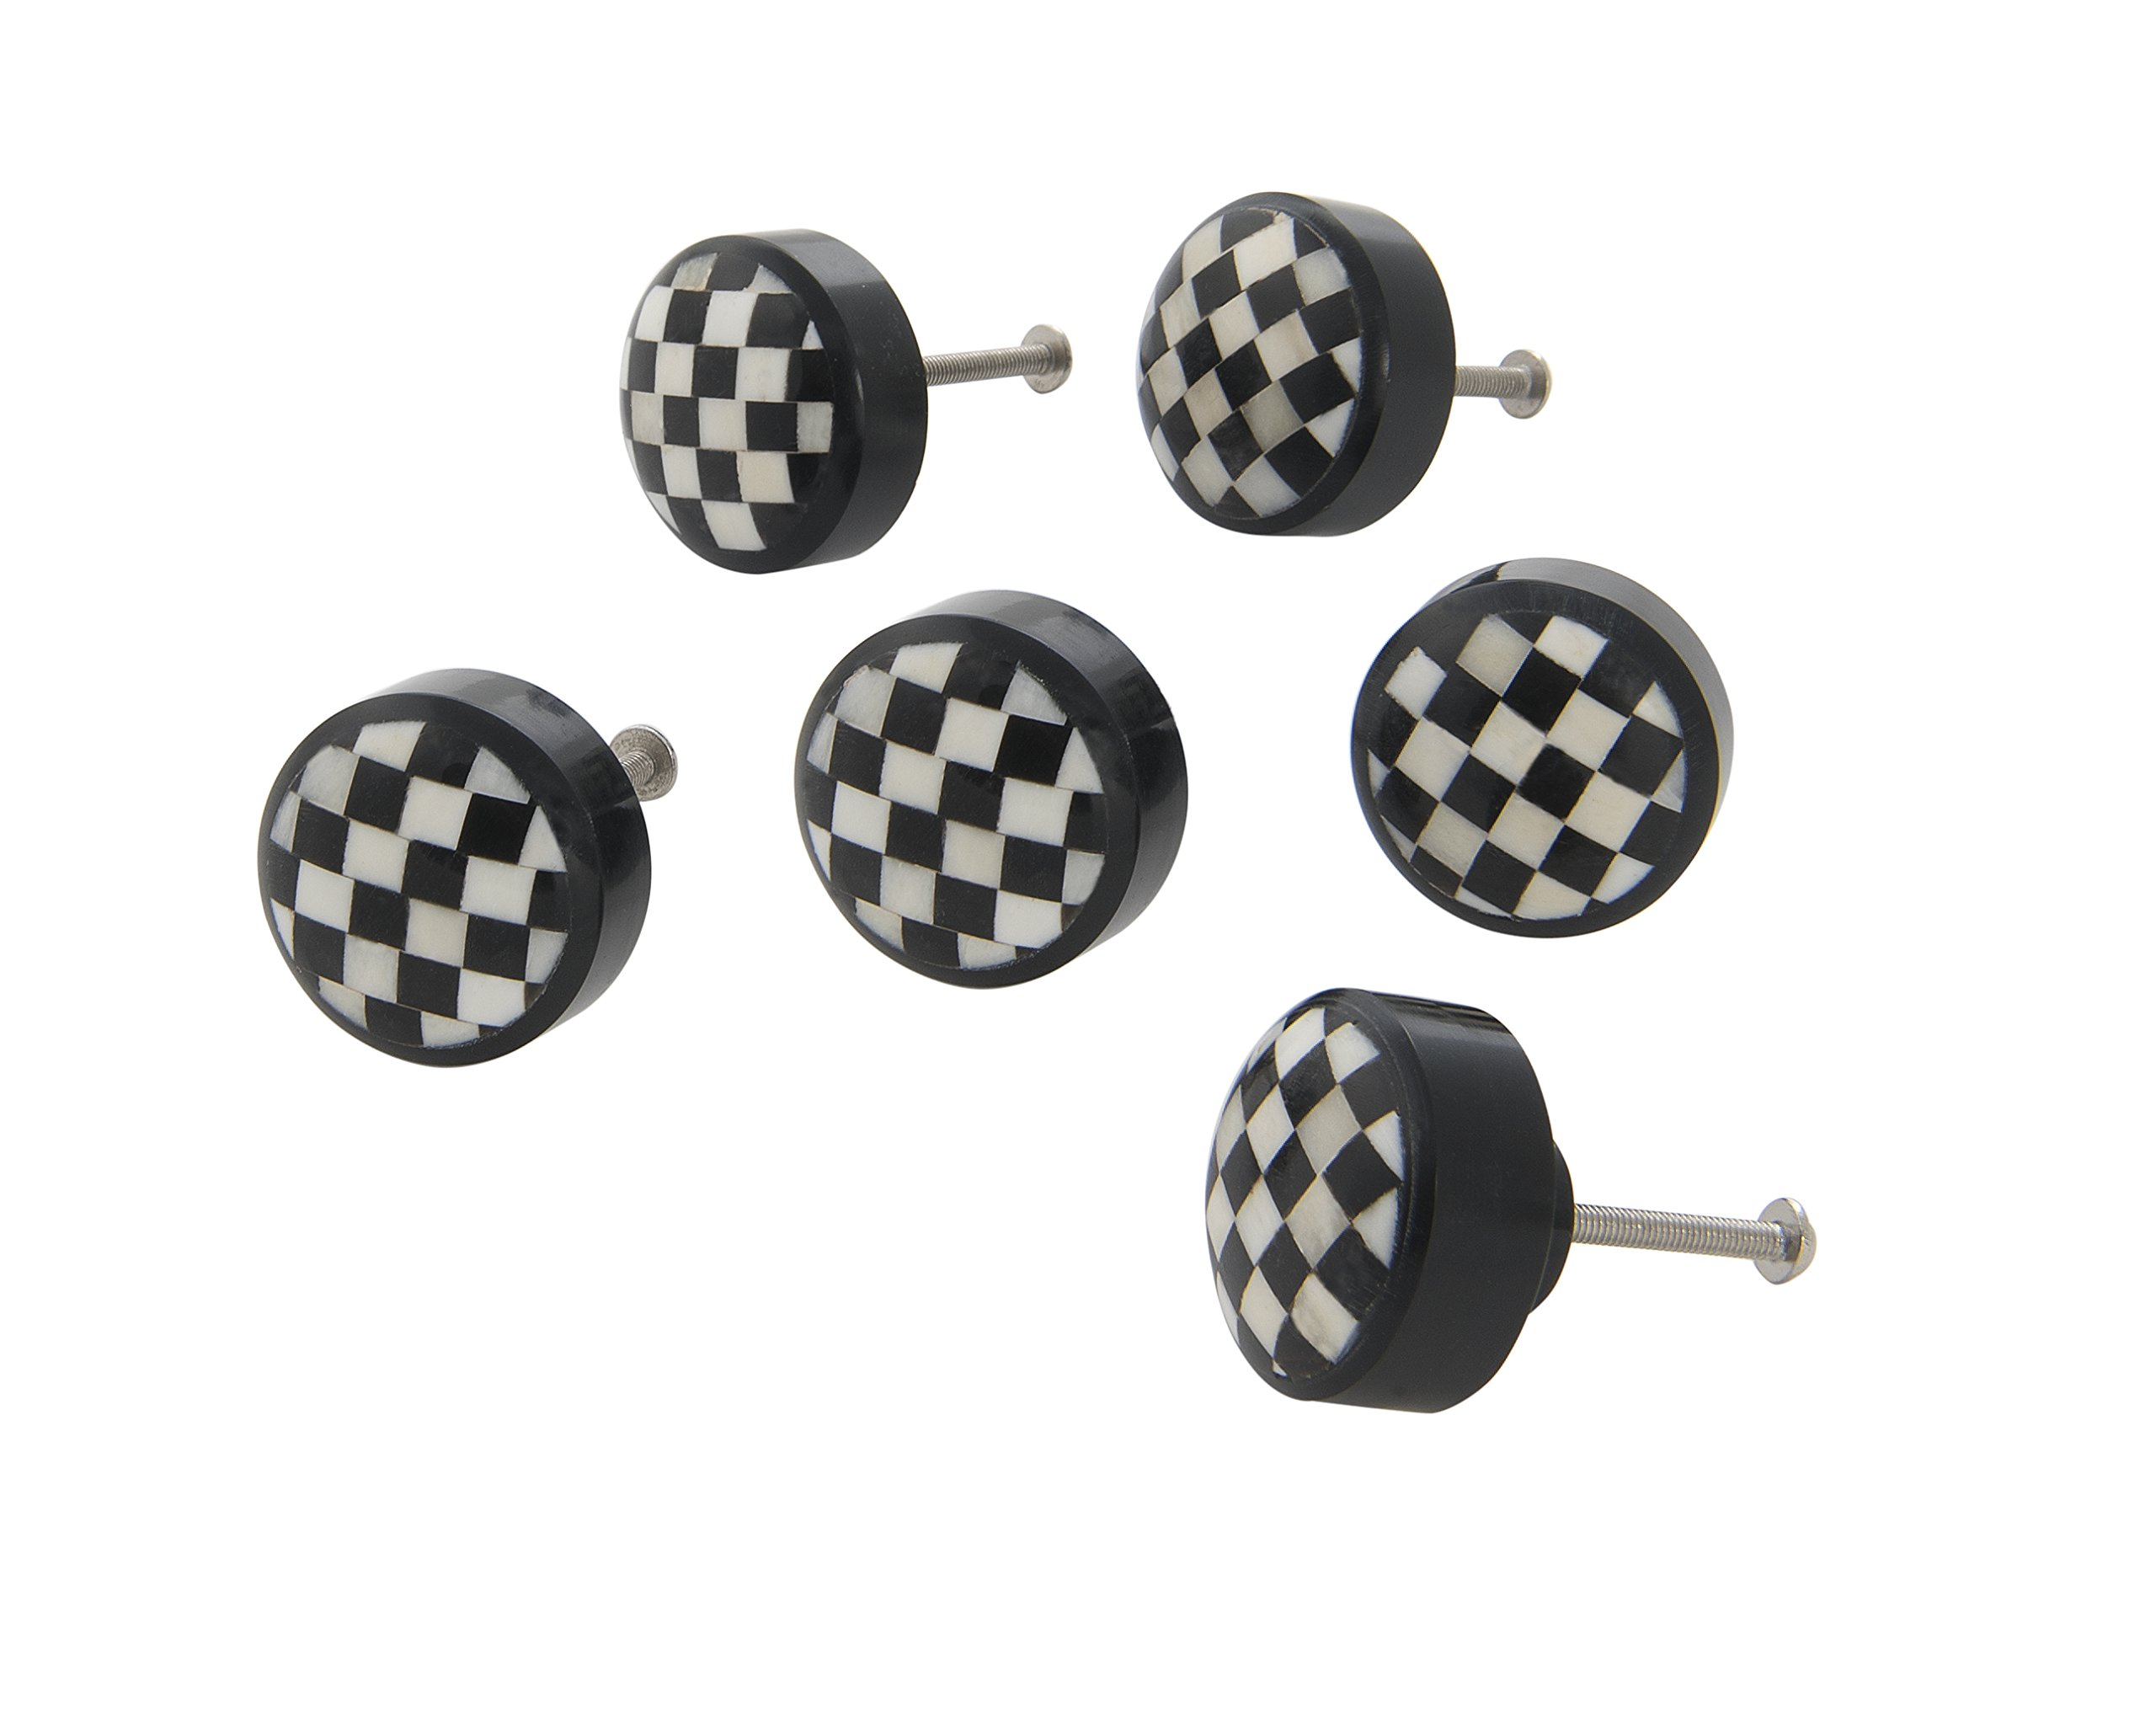 Dritz Home 47073A Resin Checkerboard Knob Handcrafted Knobs for Cabinets & Drawers